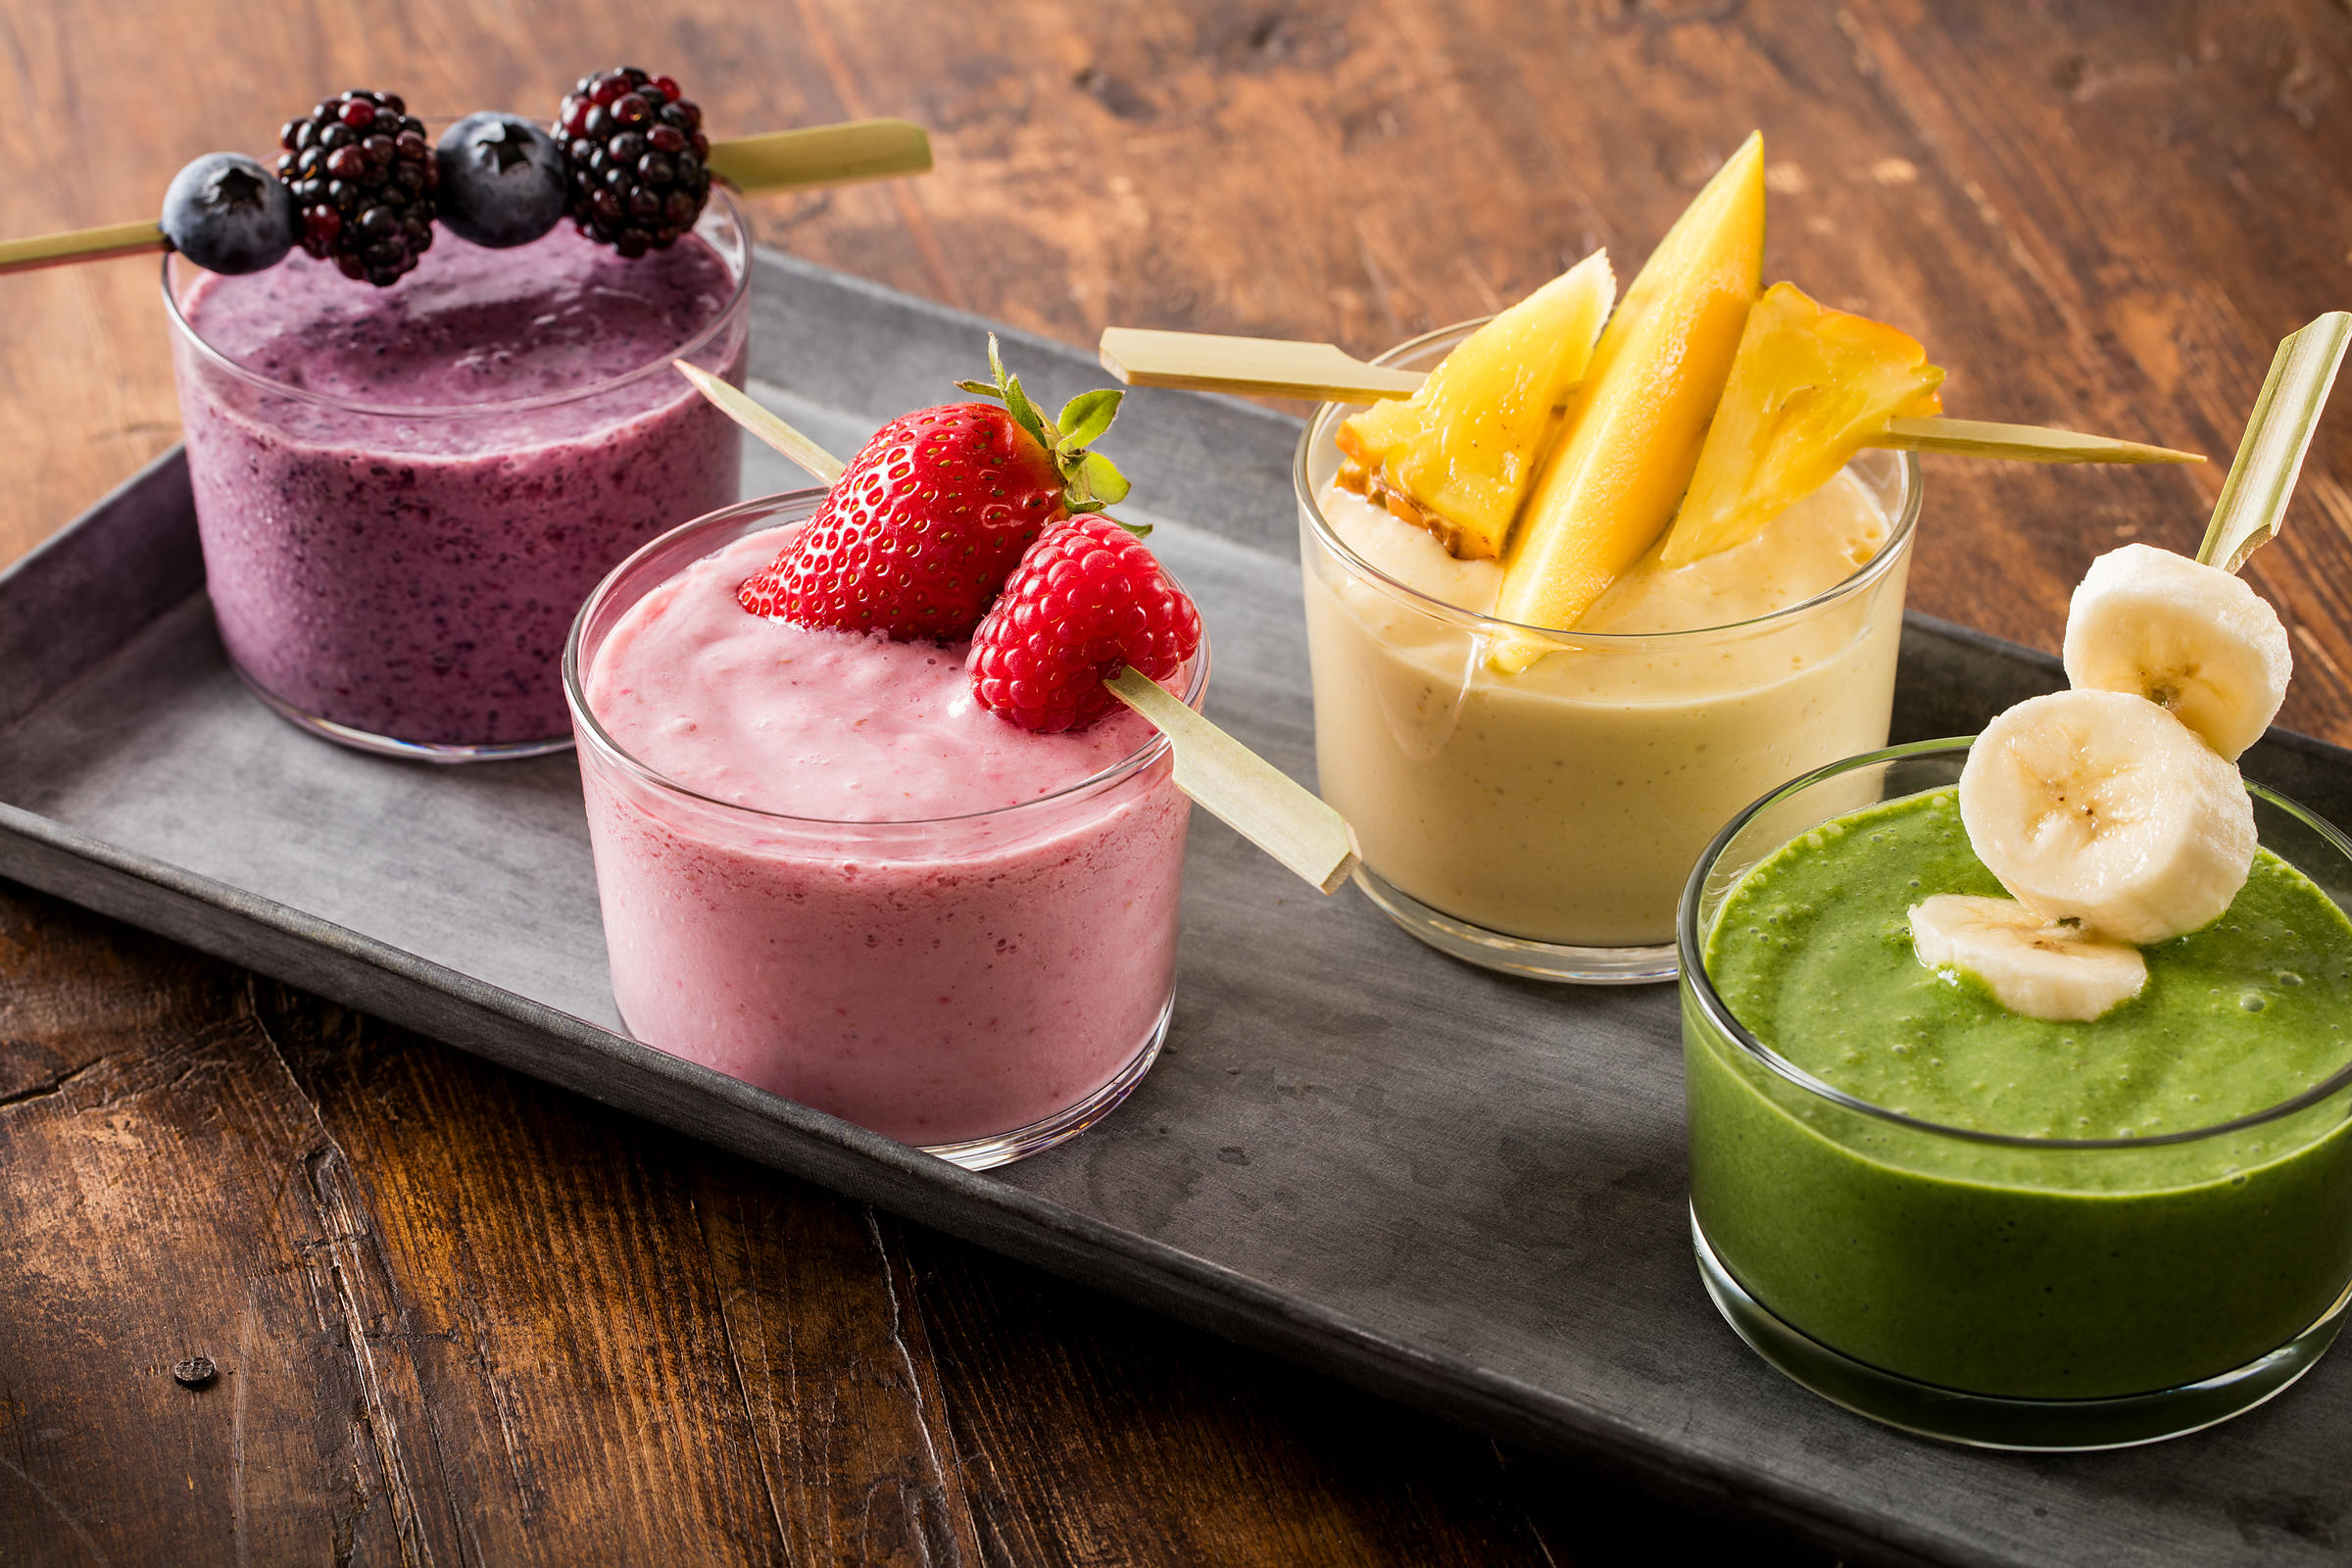 Fresh and healthy! Styled food photography shoot for commercial and marketing by Jason Tinacci